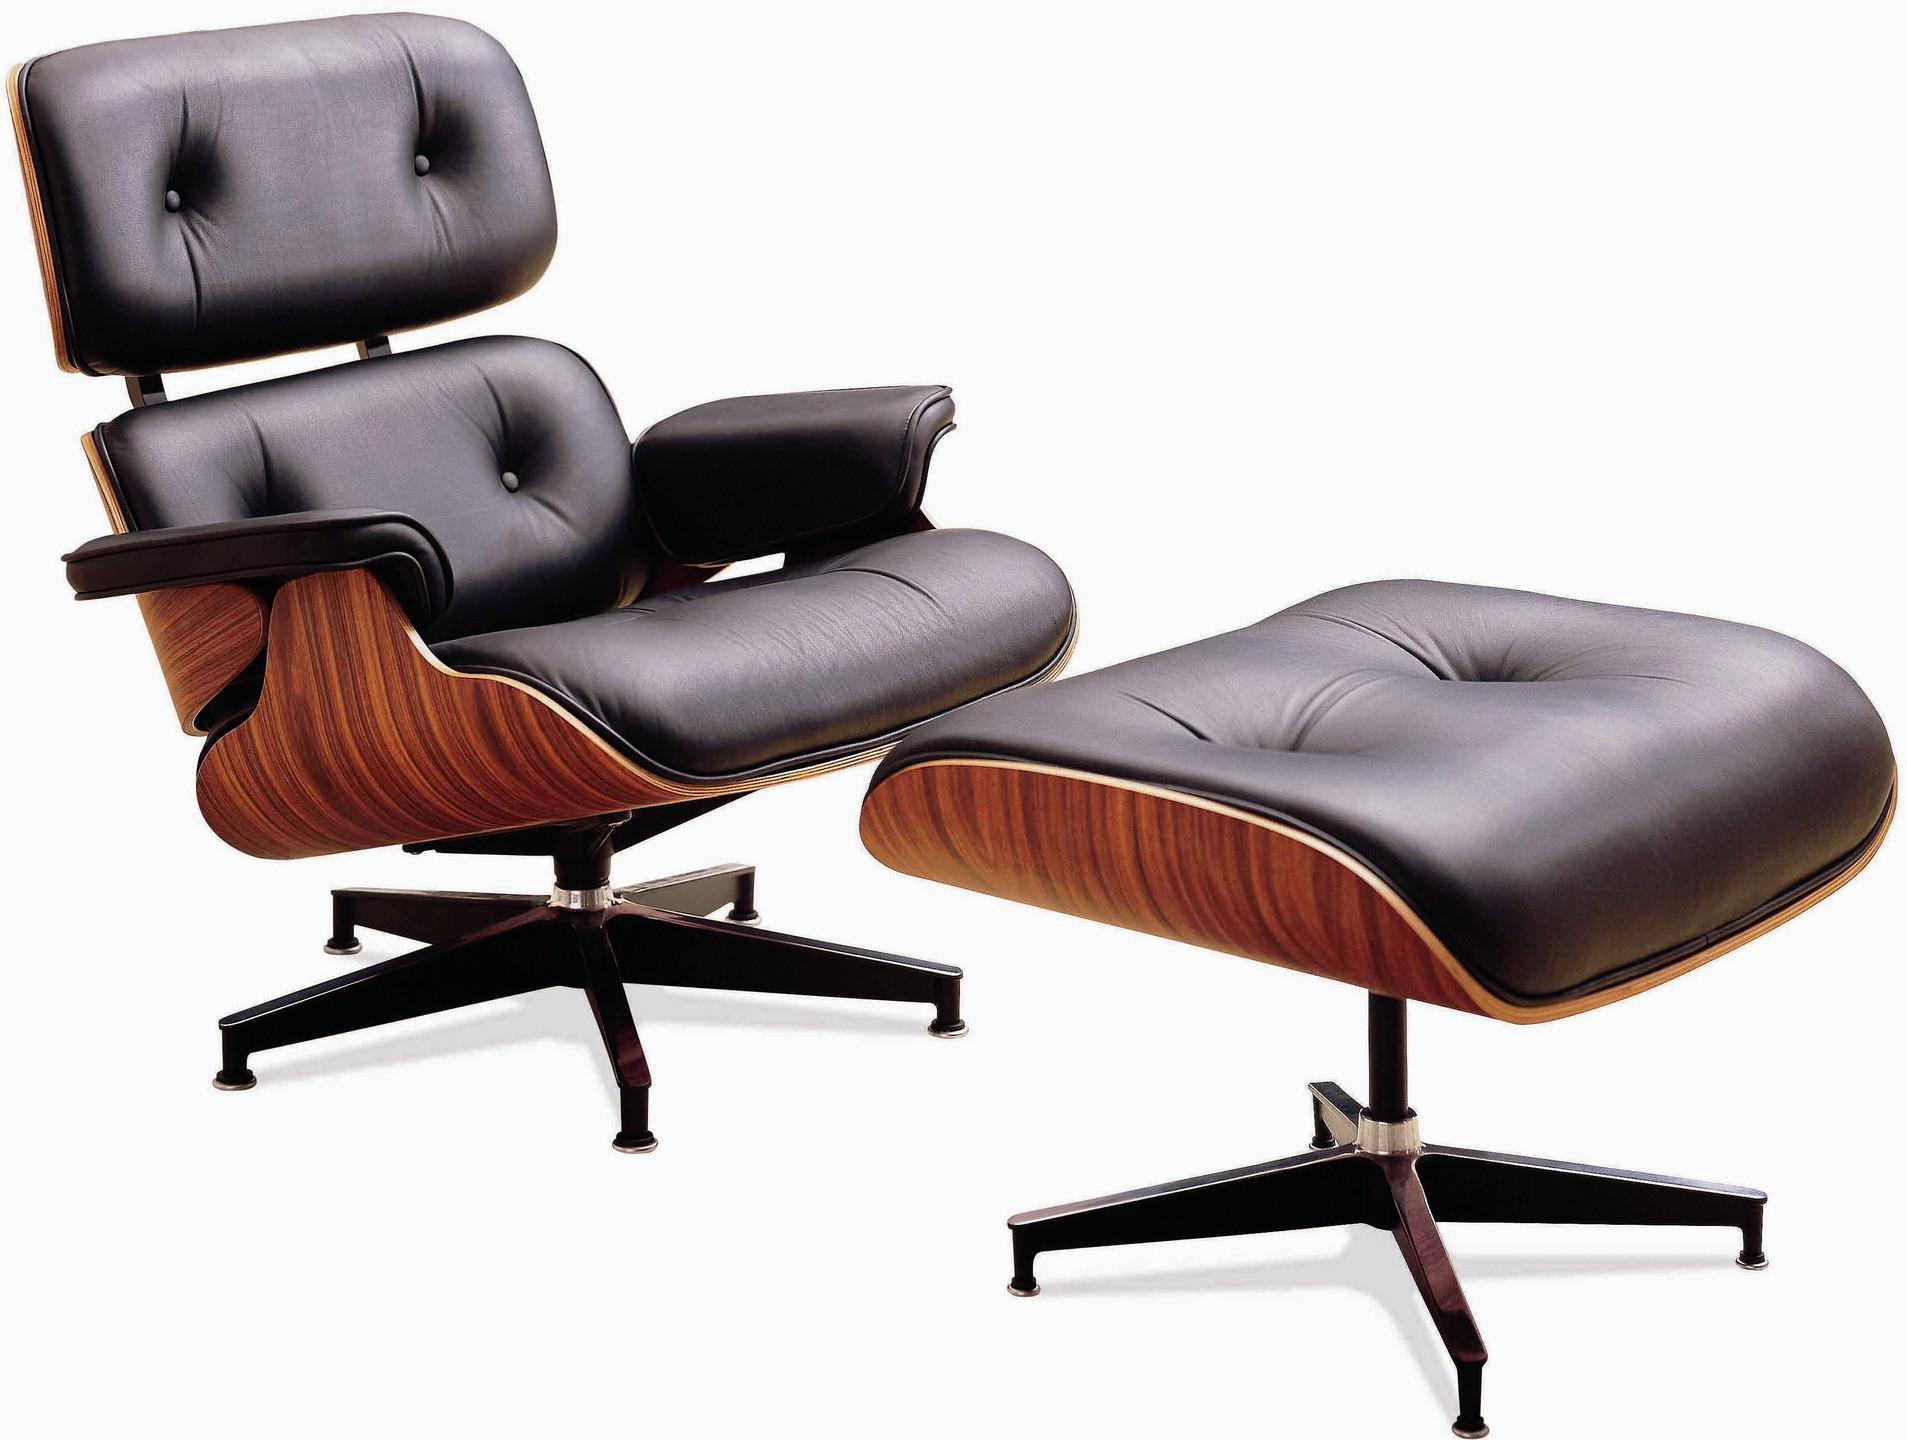 Eames Lounge Chair Wood Black Leather